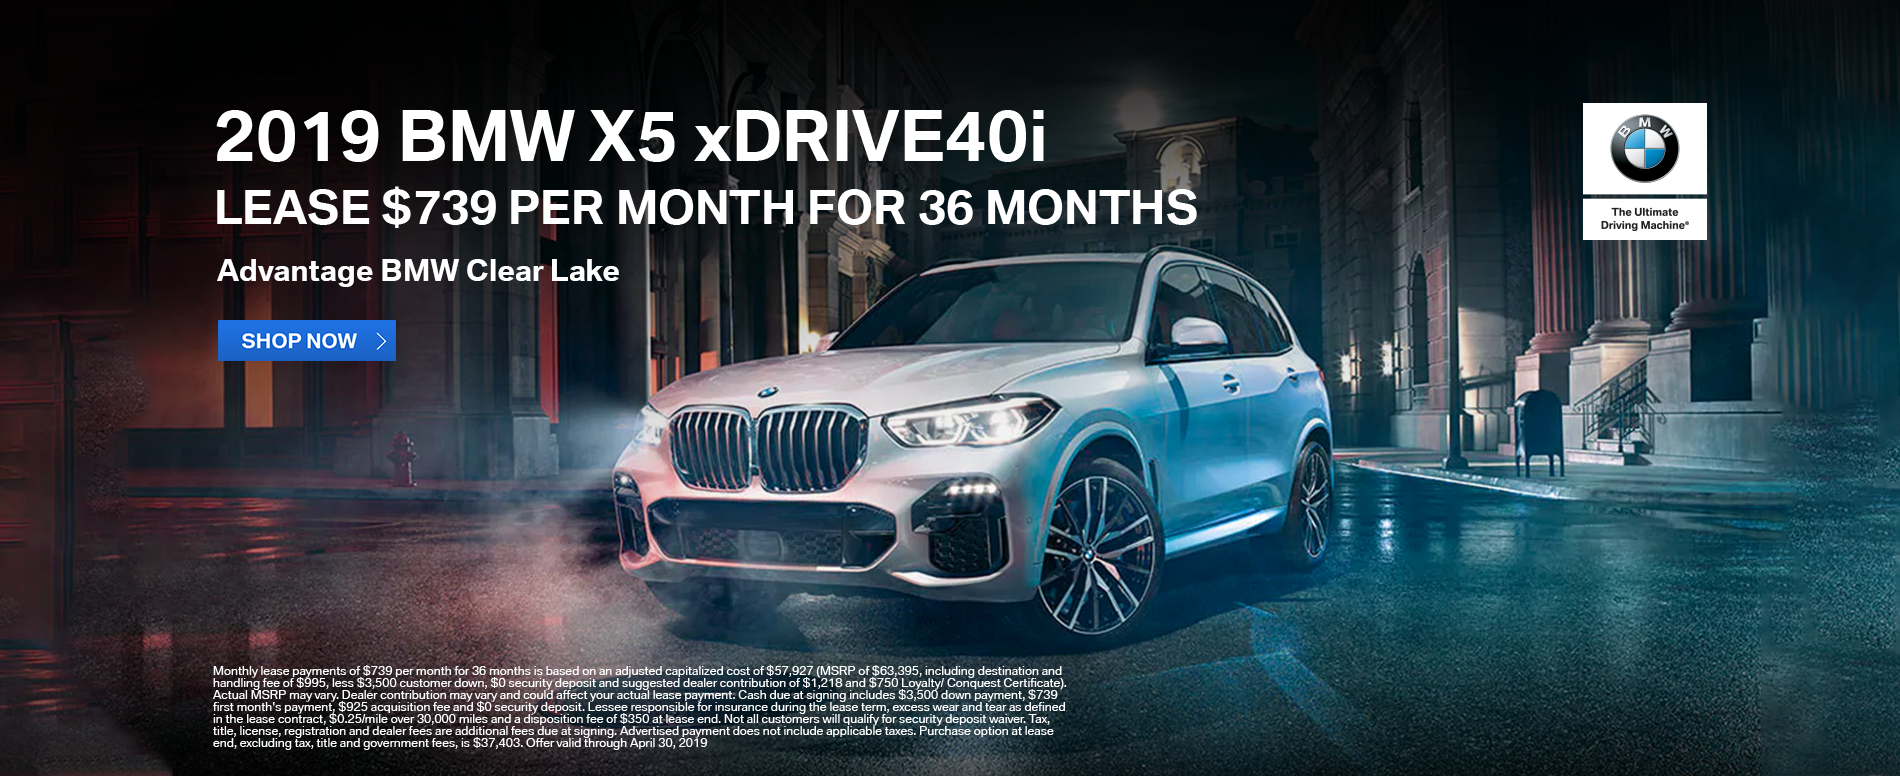 lease-2019-bmw-x5-xdrive40i-739-per-month-clear-lake